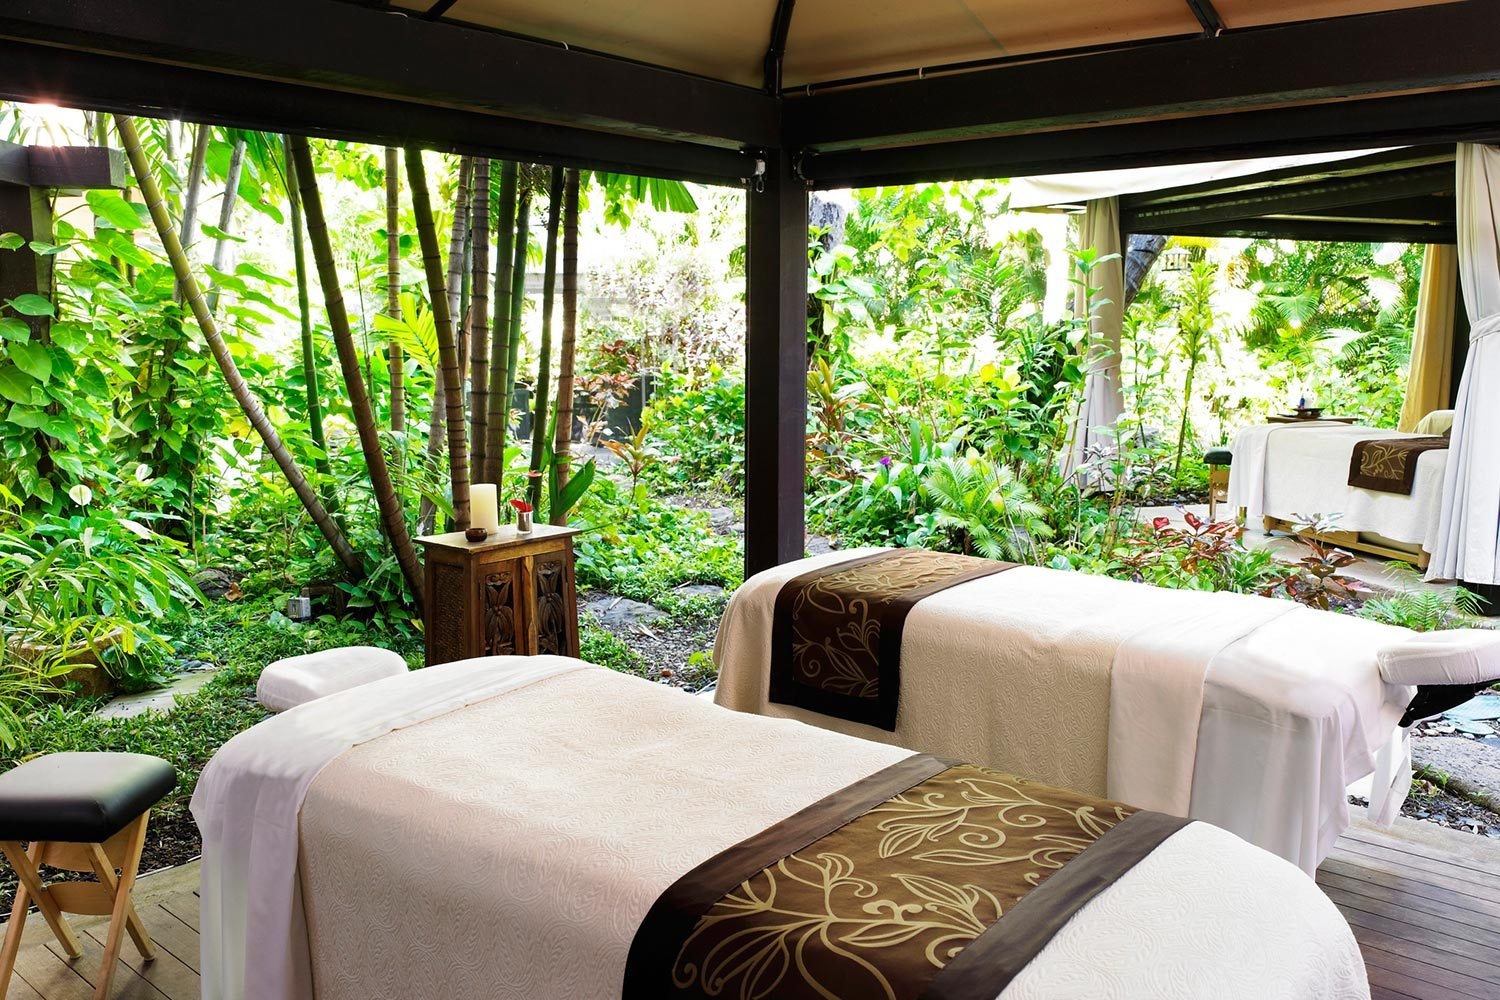 two beige massage tables in hut surrounded by plants